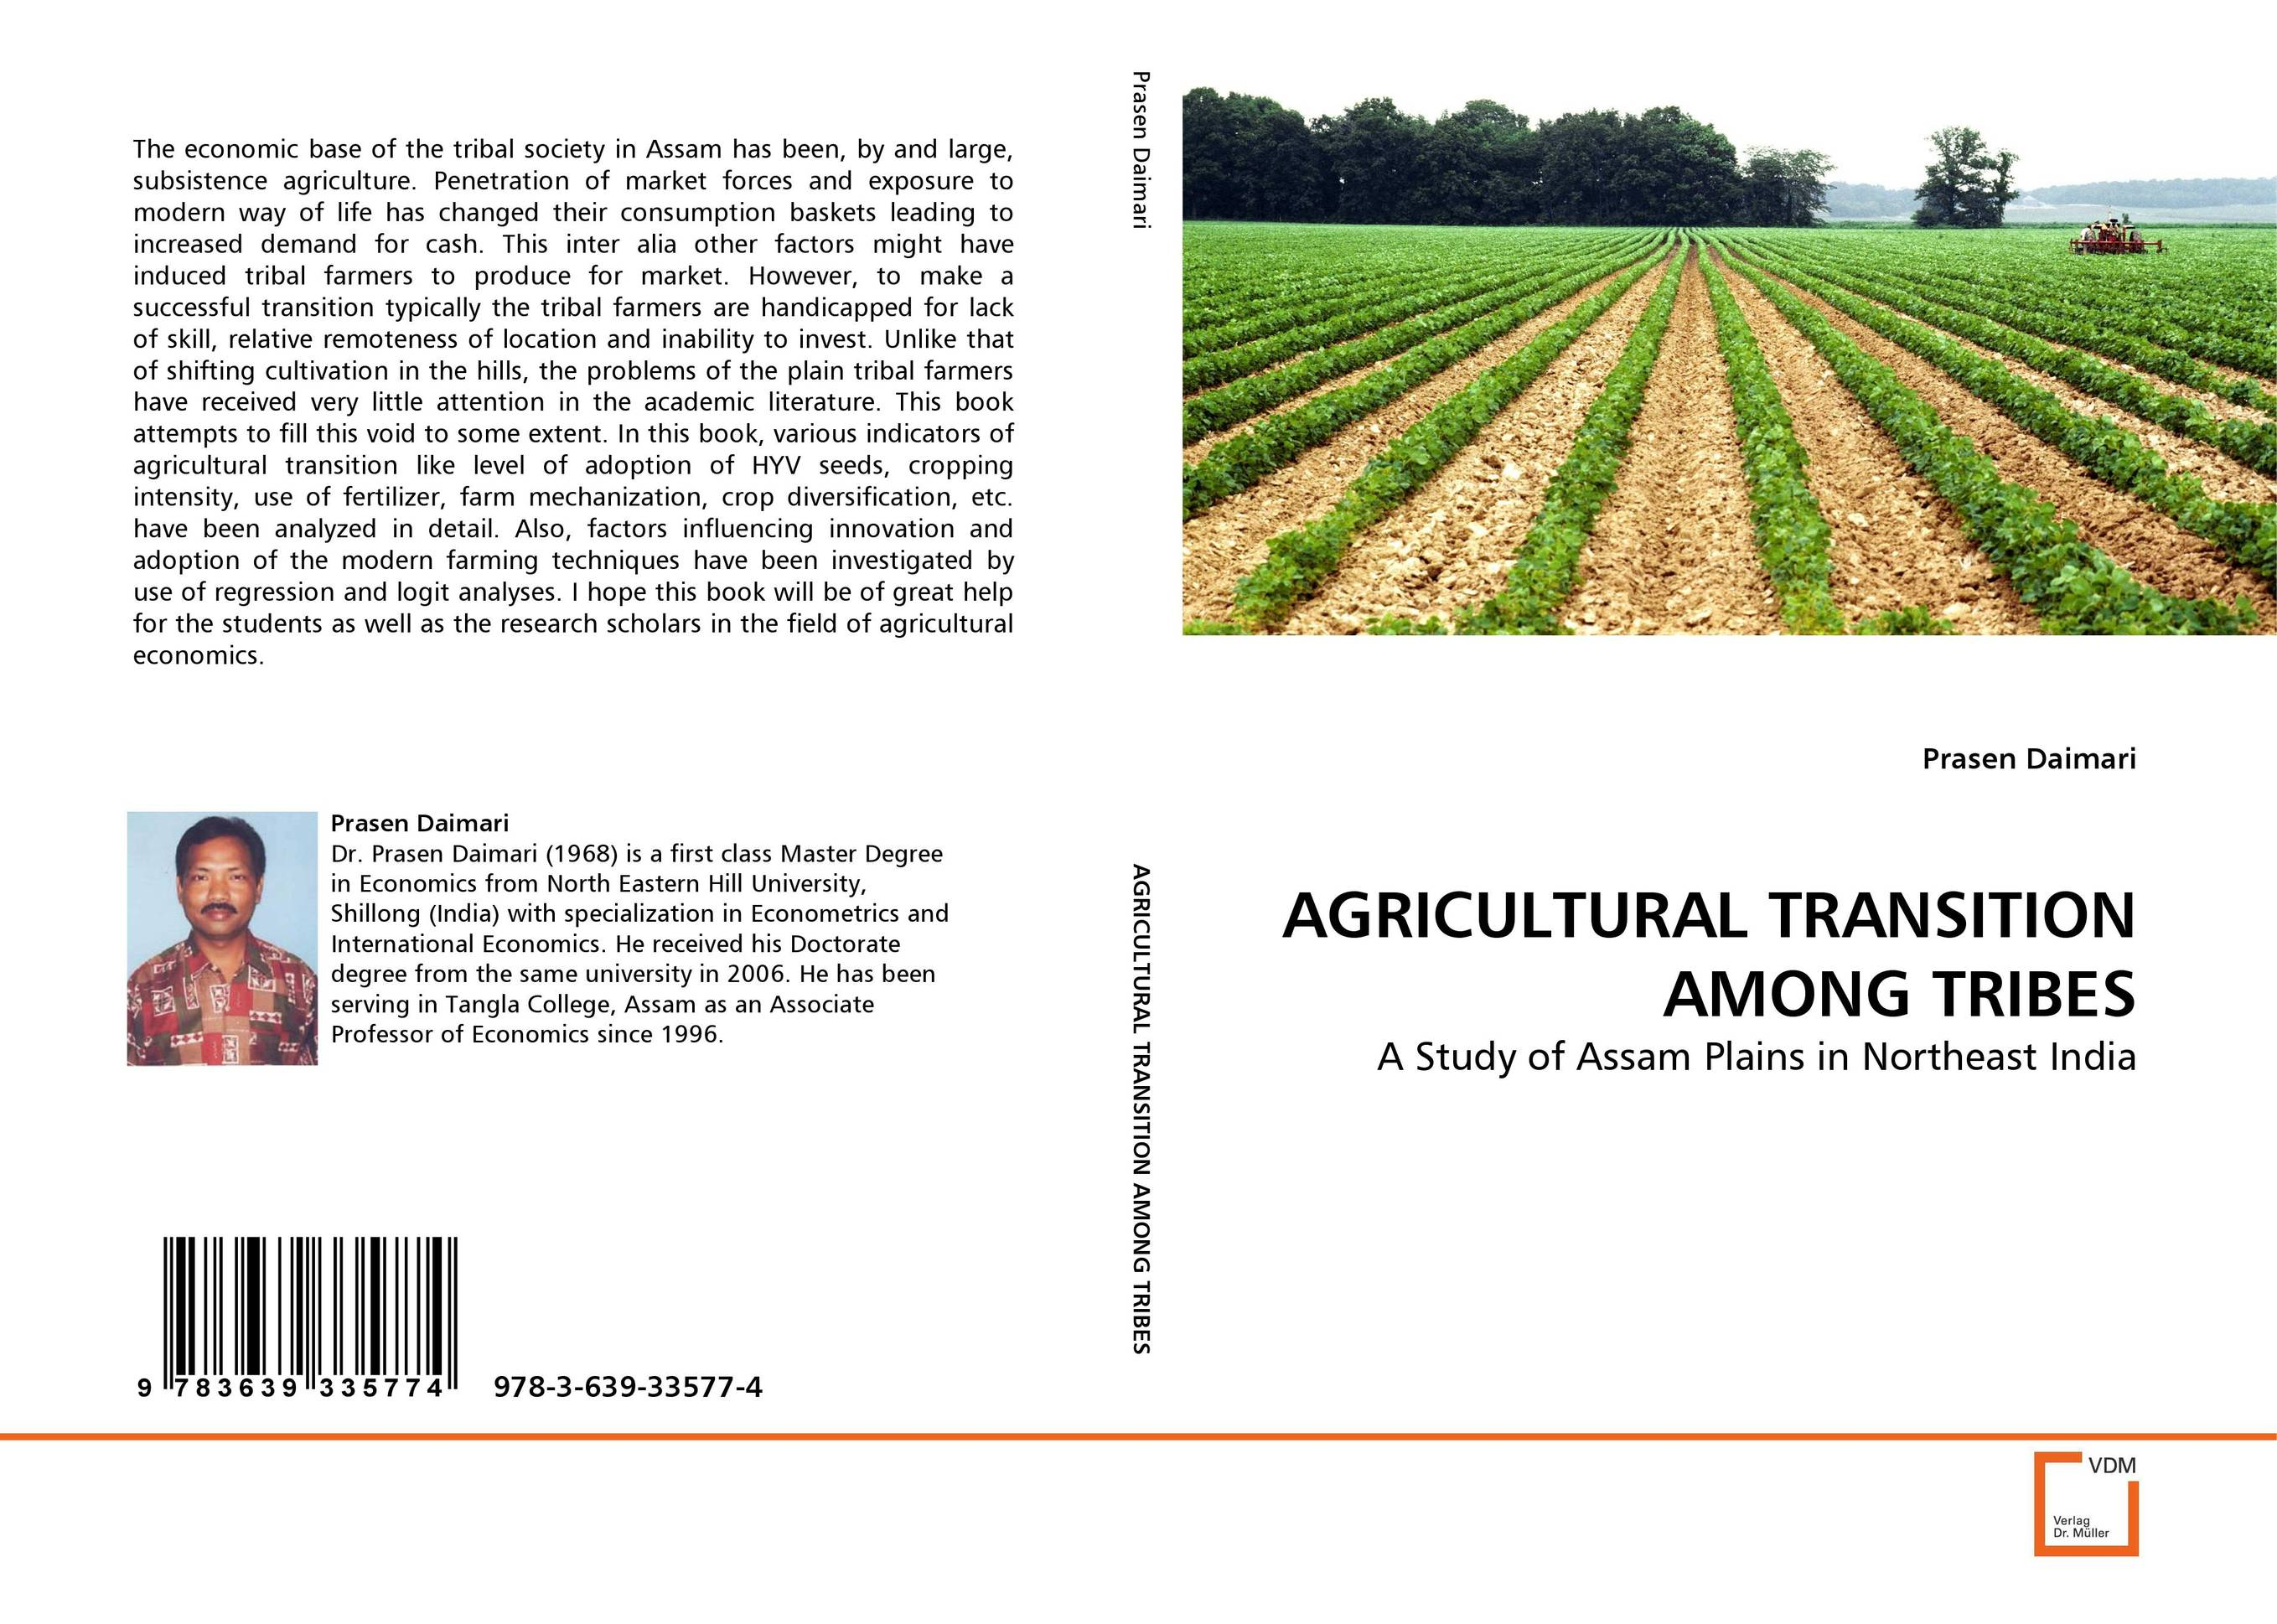 AGRICULTURAL TRANSITION AMONG TRIBES